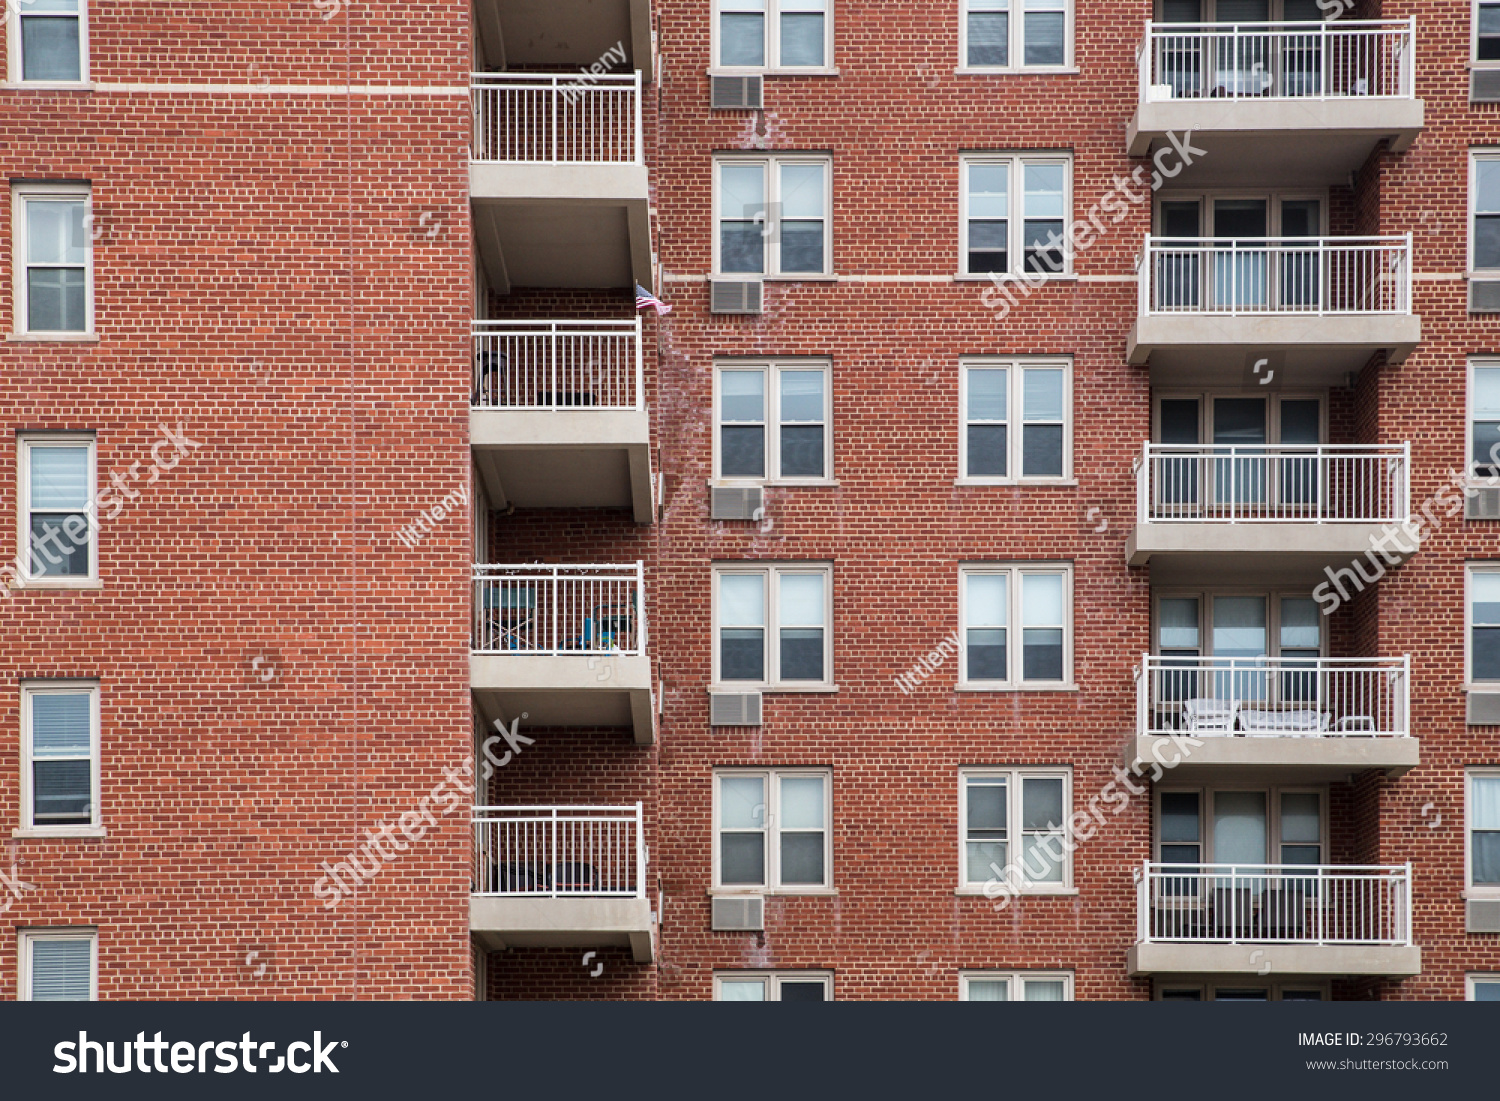 Typical apartment building exterior brick windows stock for New residential windows